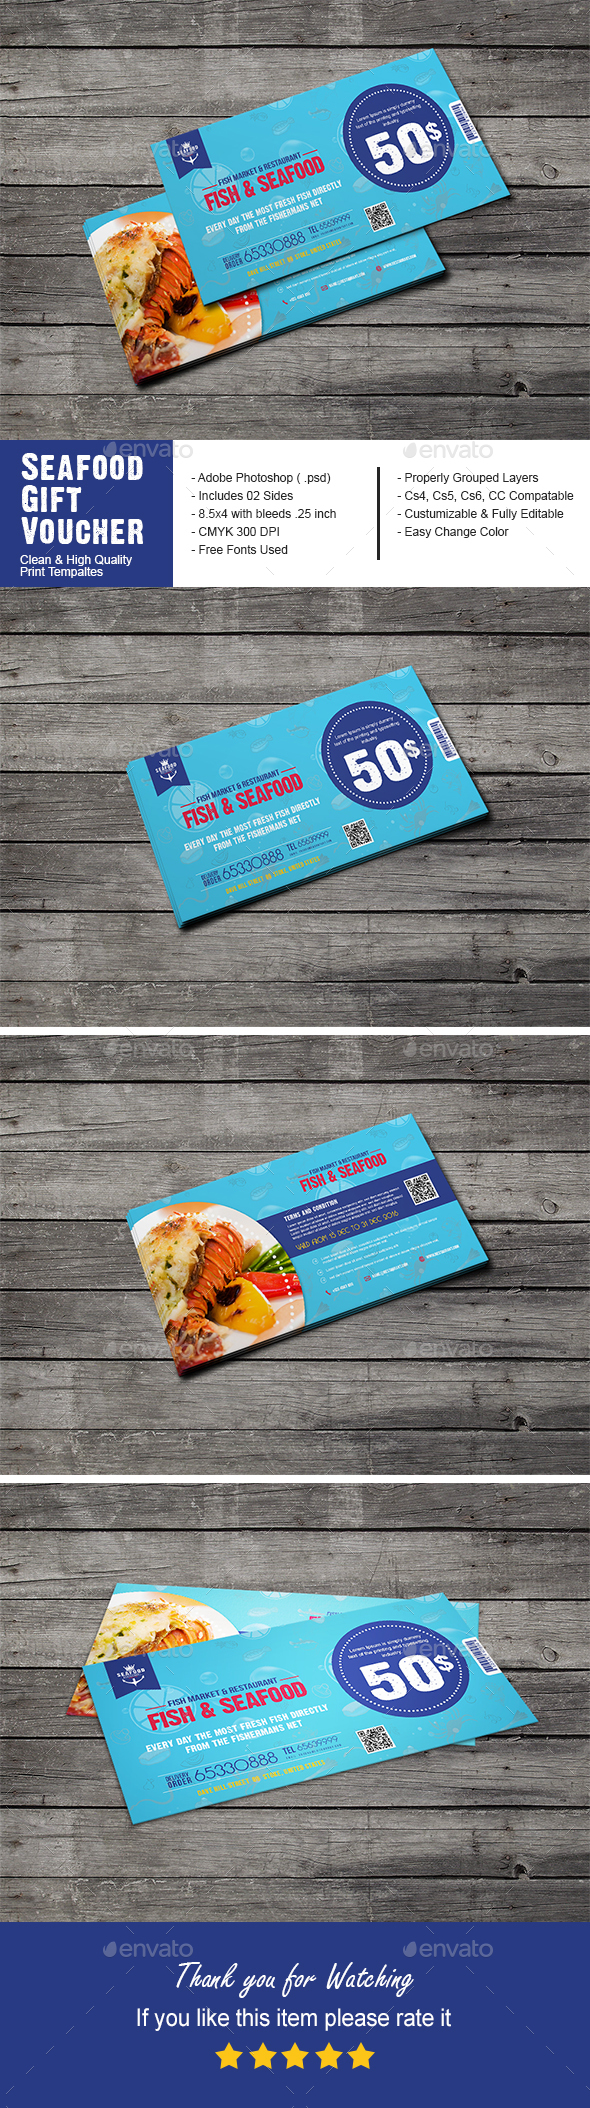 Seafood Restaurant Gift Voucher - Cards & Invites Print Templates